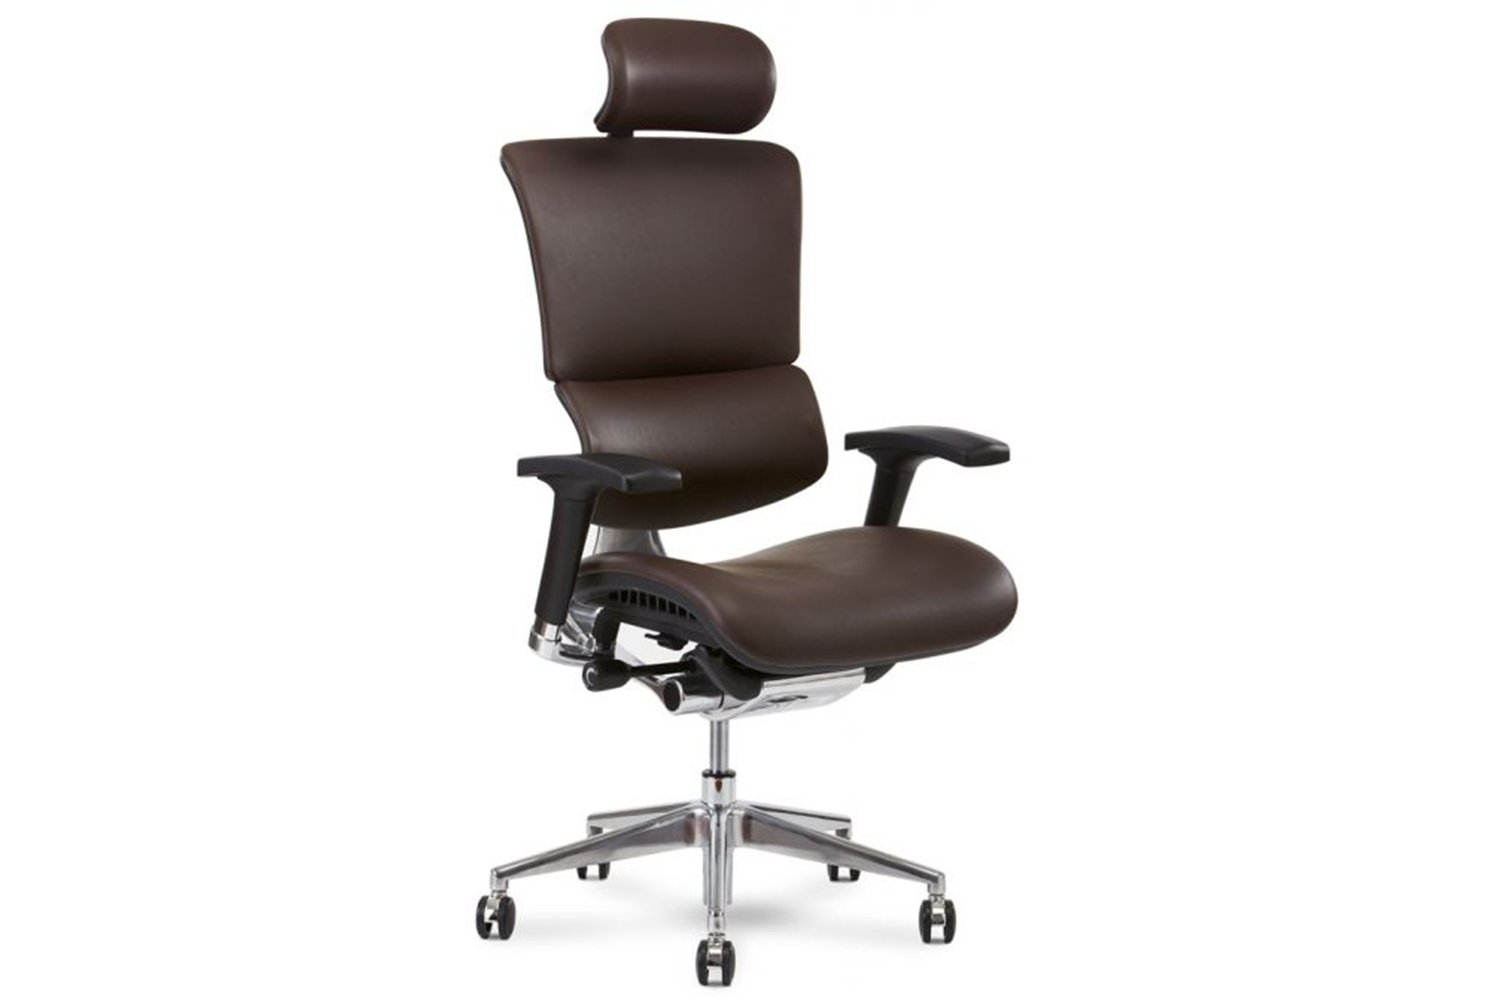 Introducing the X4 leather executive chair by X-Chair.